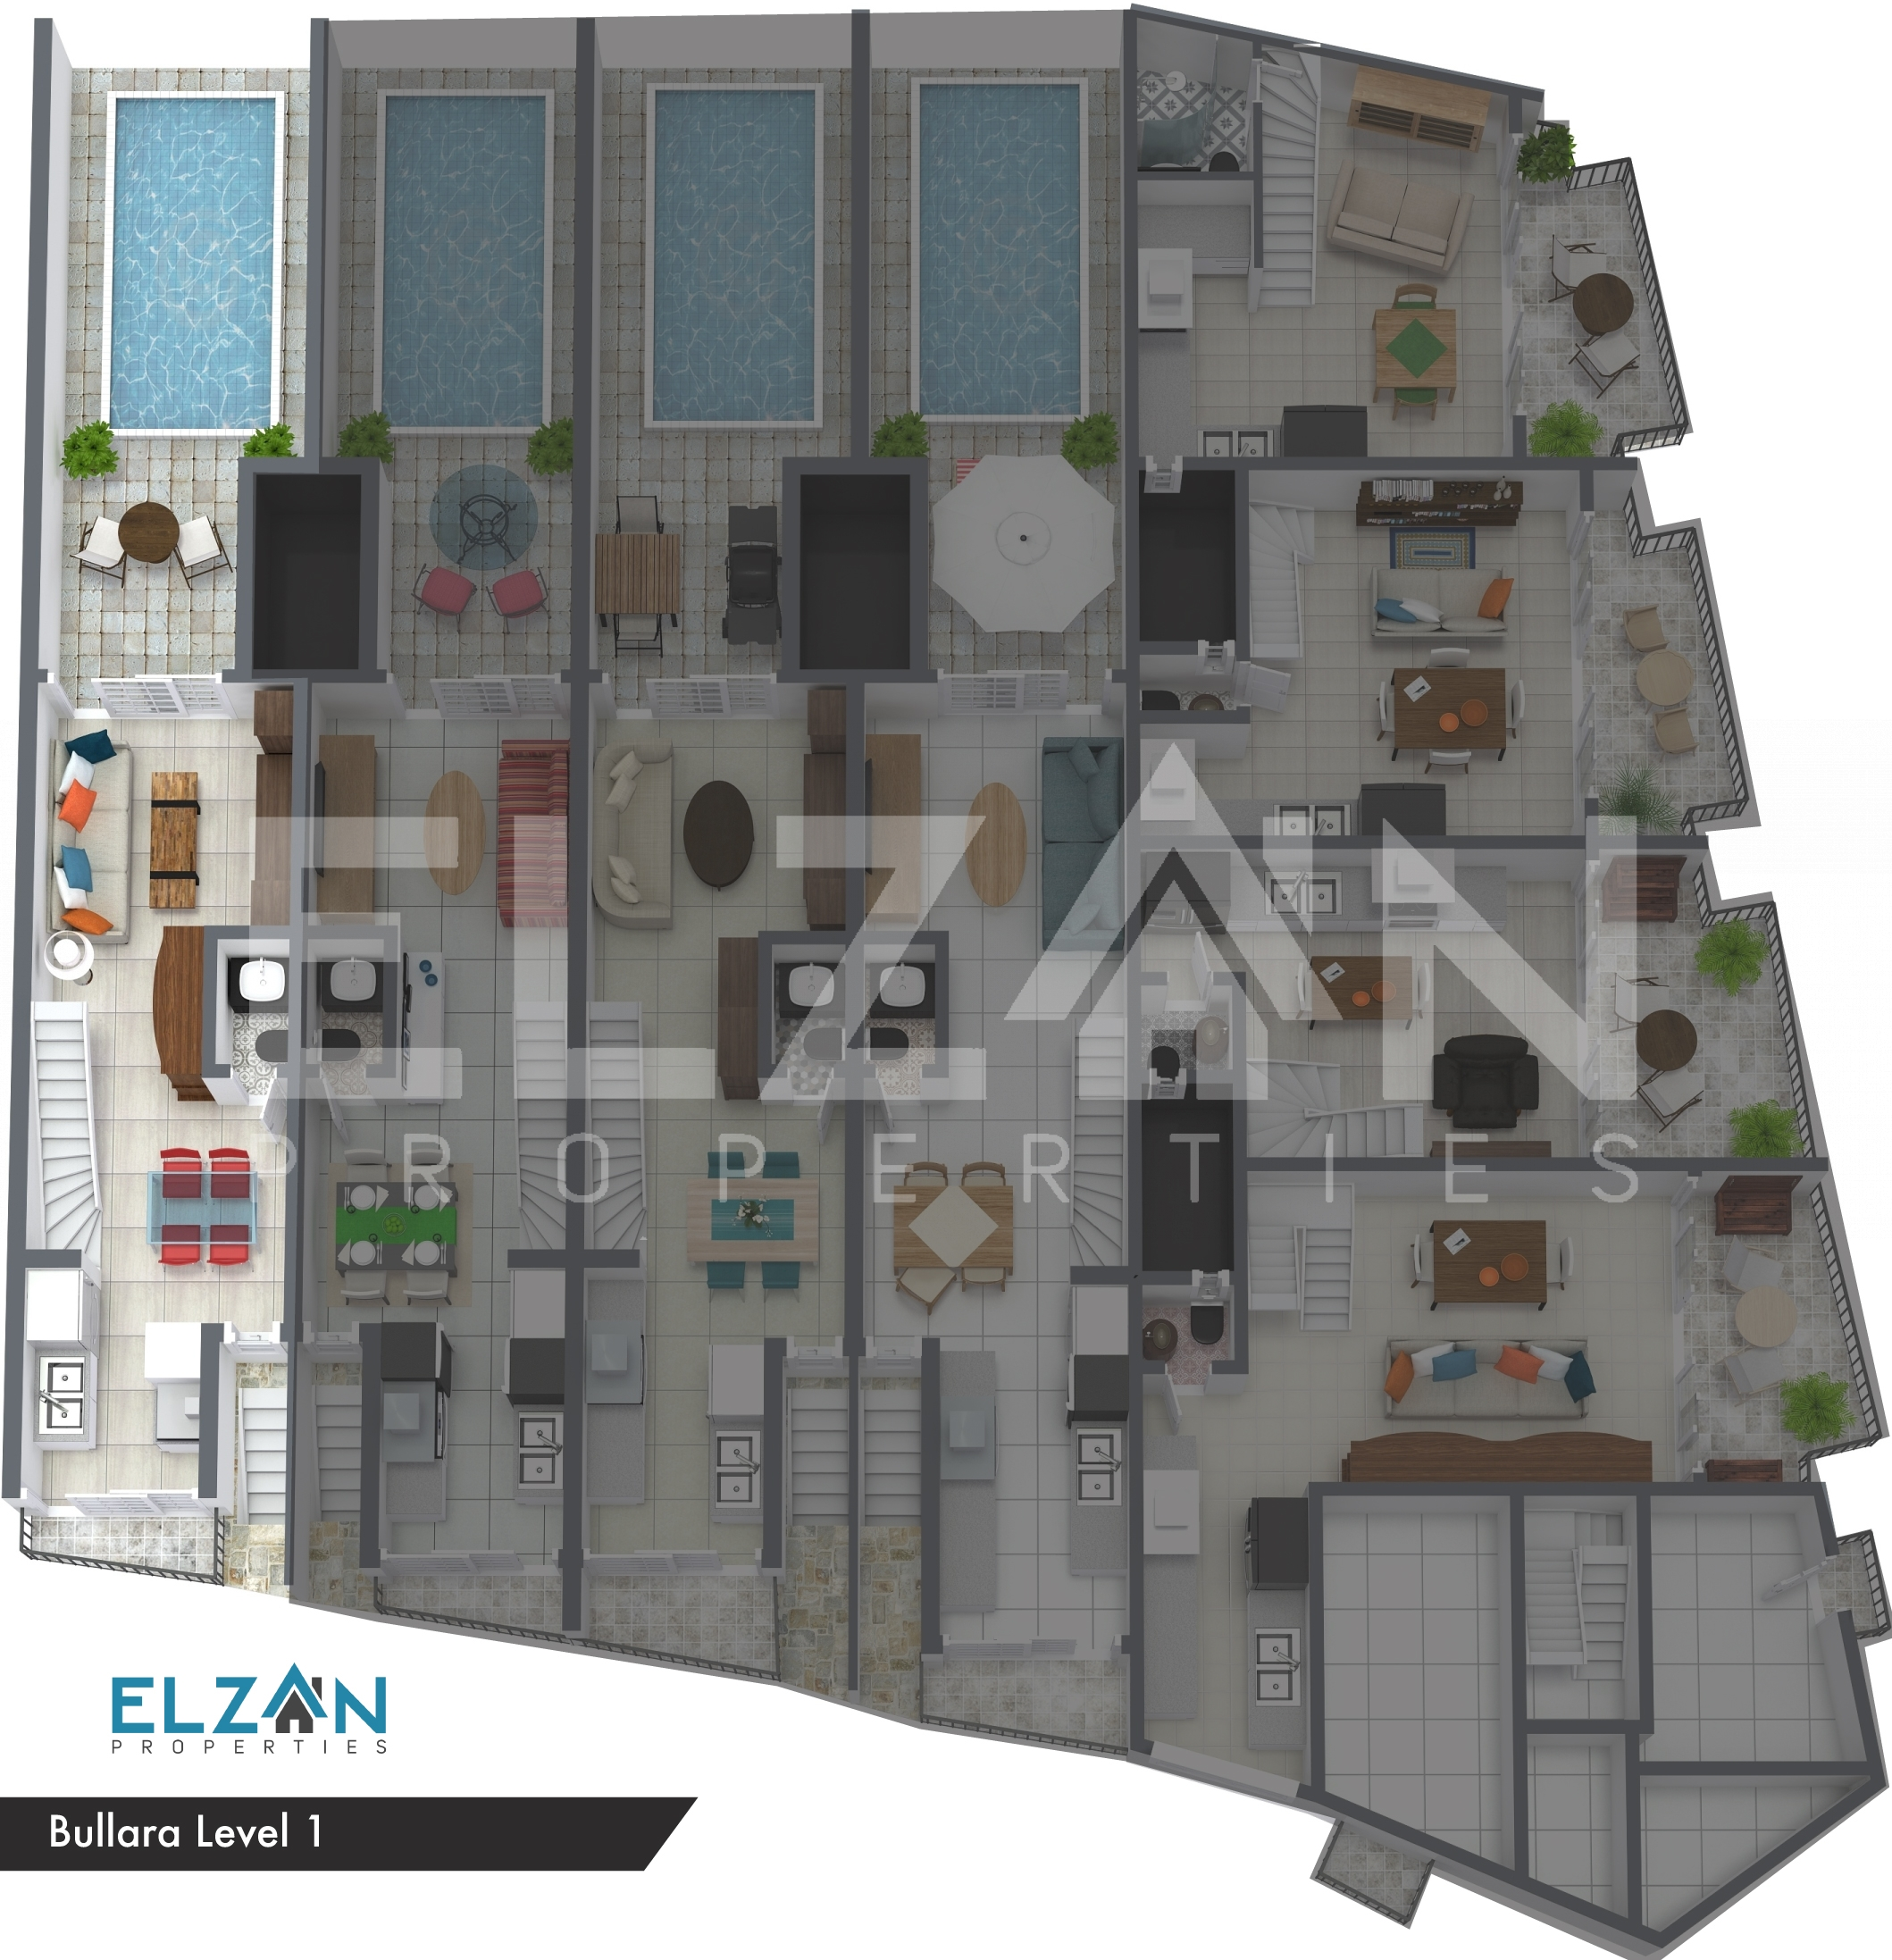 Terraced House Archives Elzan Property Gozo Best Apartments - Best house apartment designs july 2017